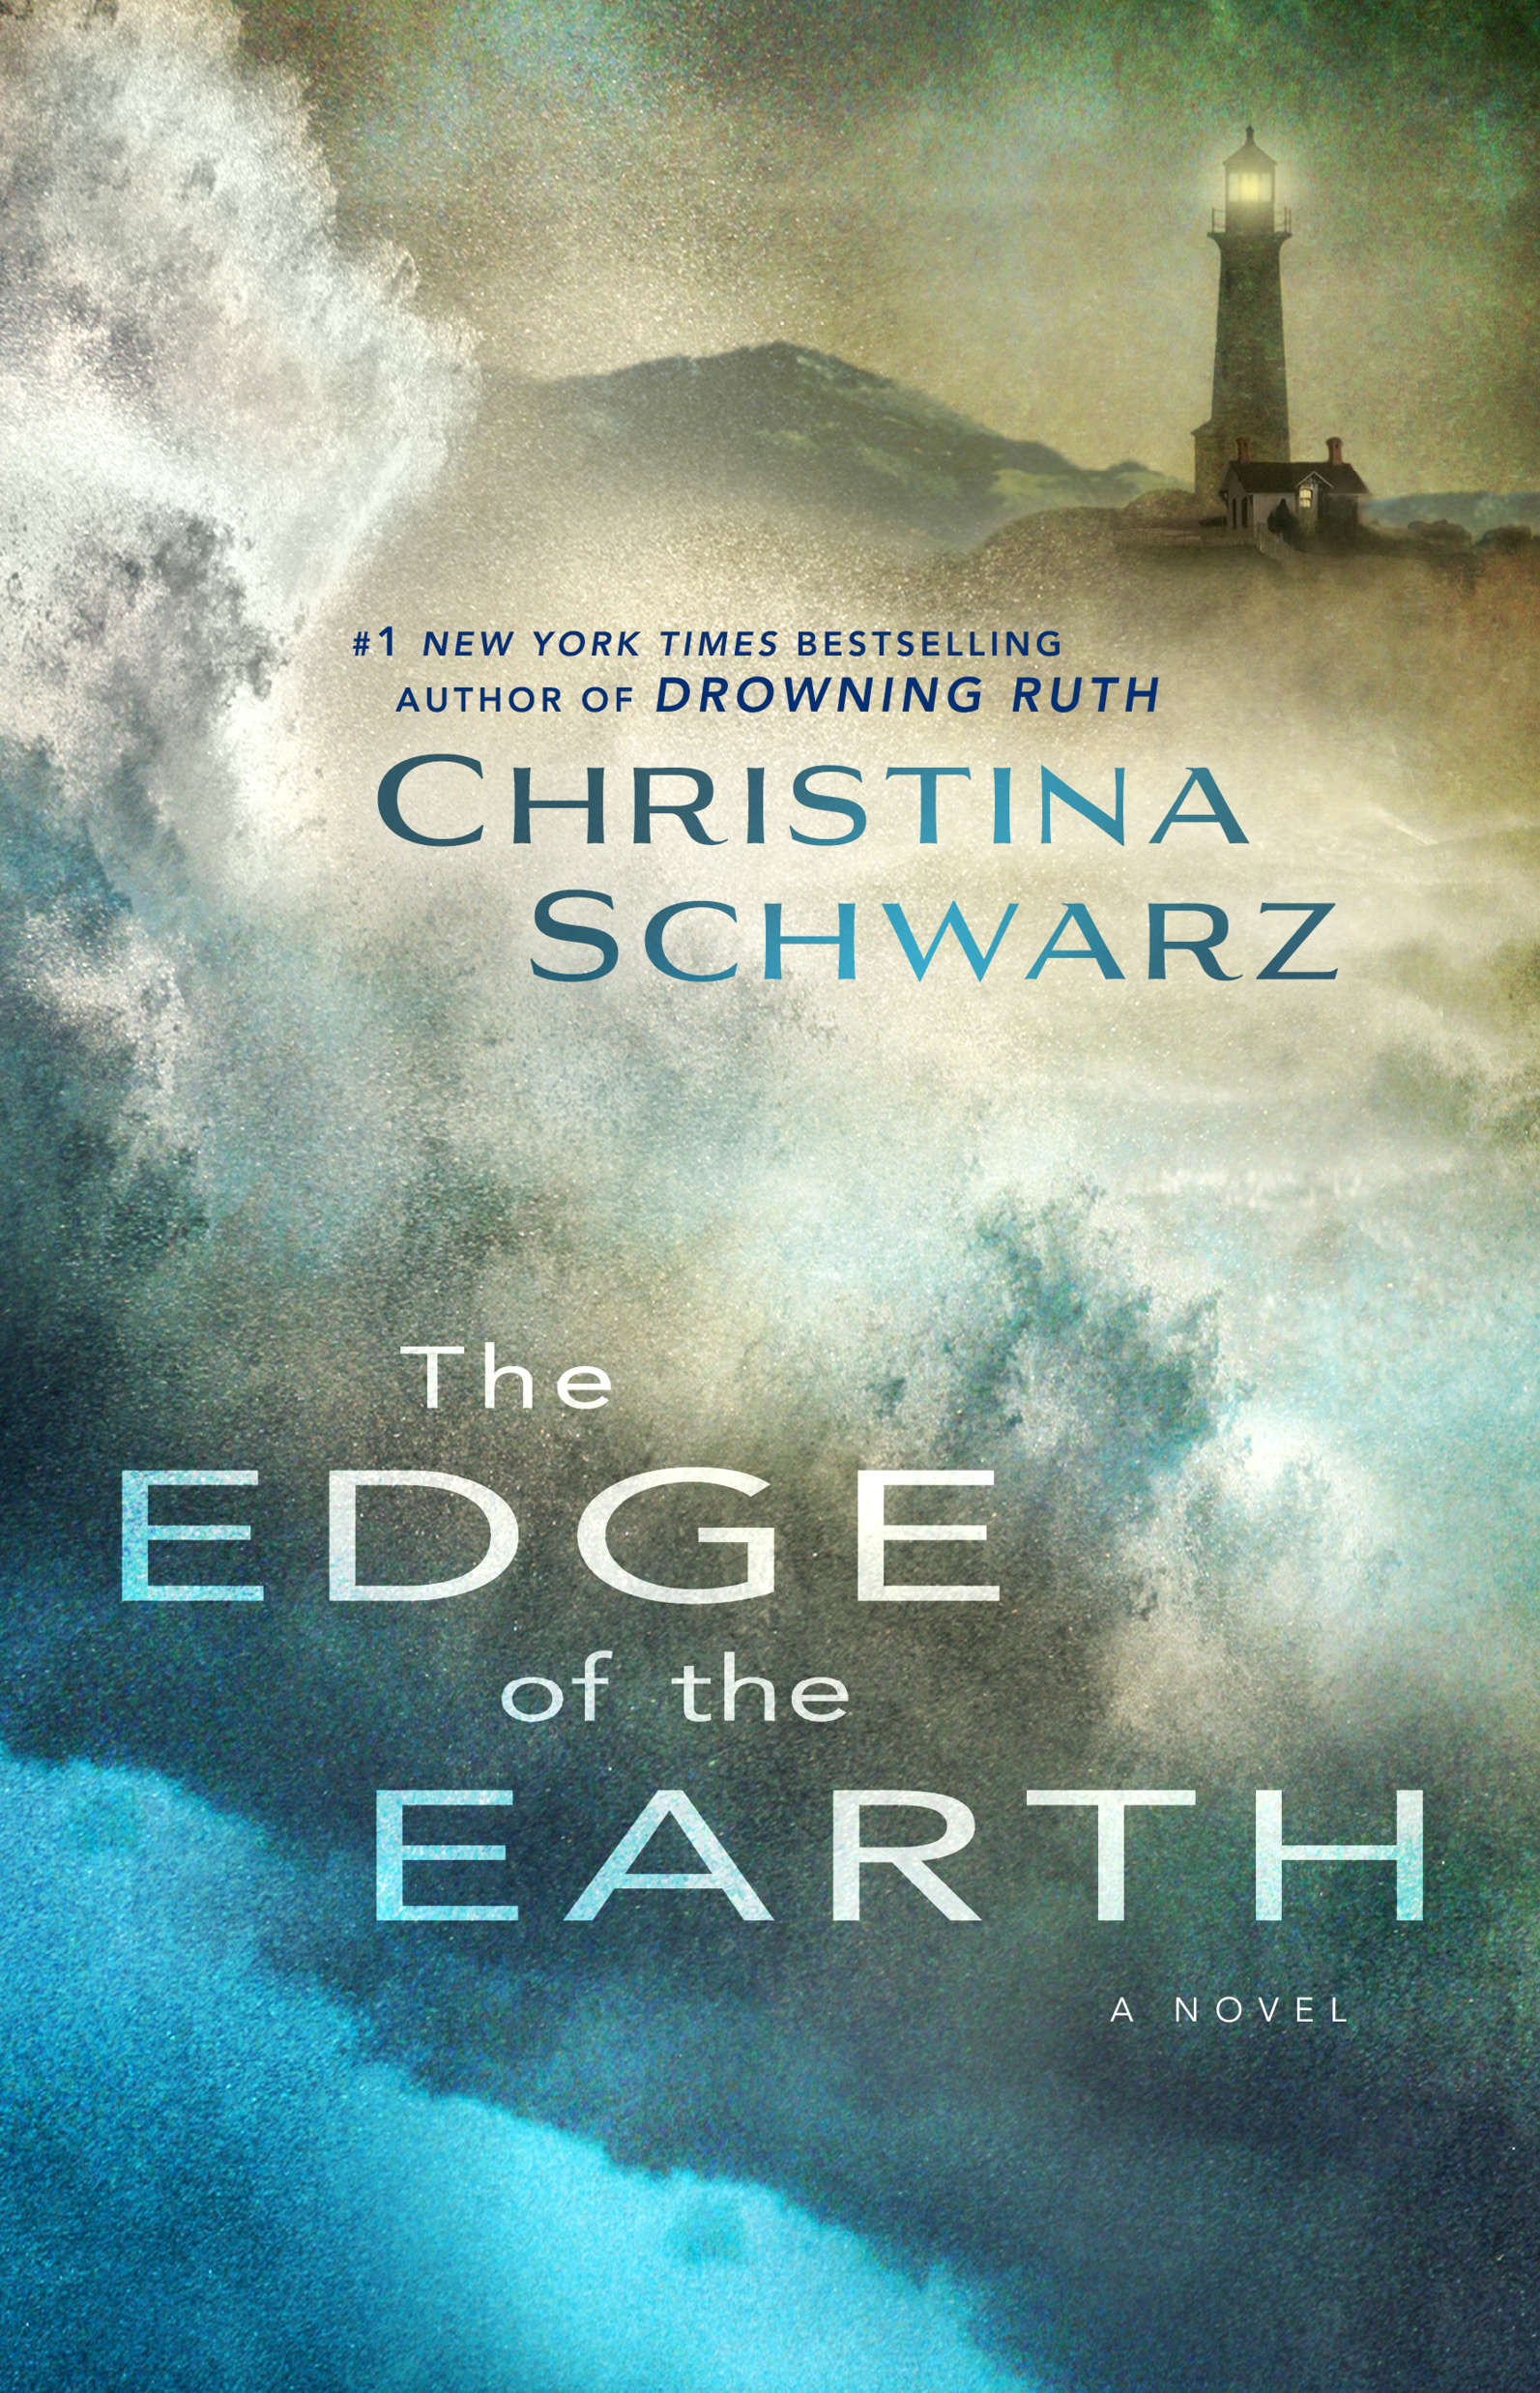 Edge-of-the-earth-9781451683707_hr